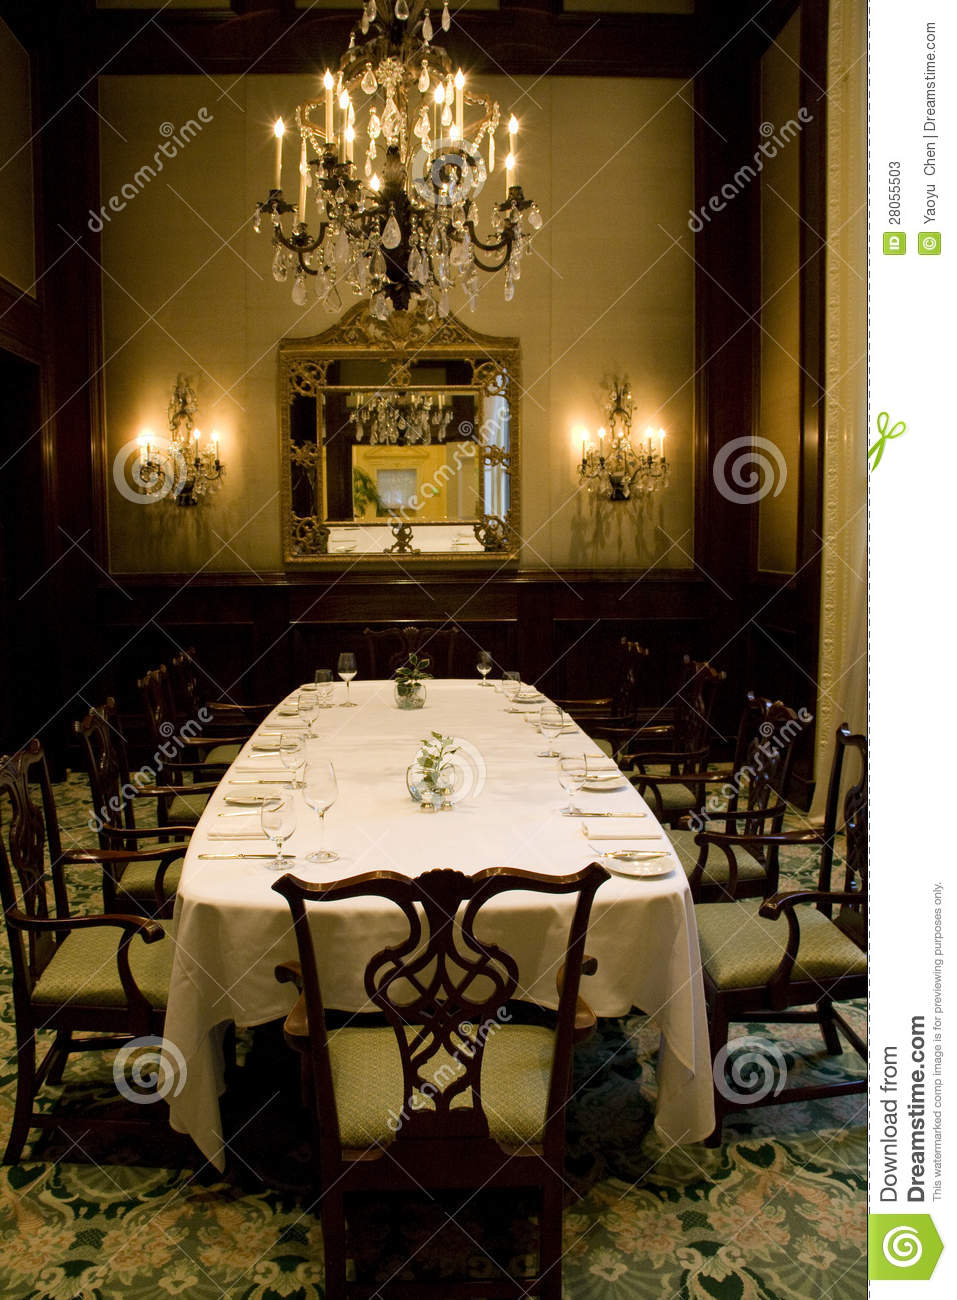 112 Private Dining Room Restaurant Photos Free Royalty Free Stock Photos From Dreamstime